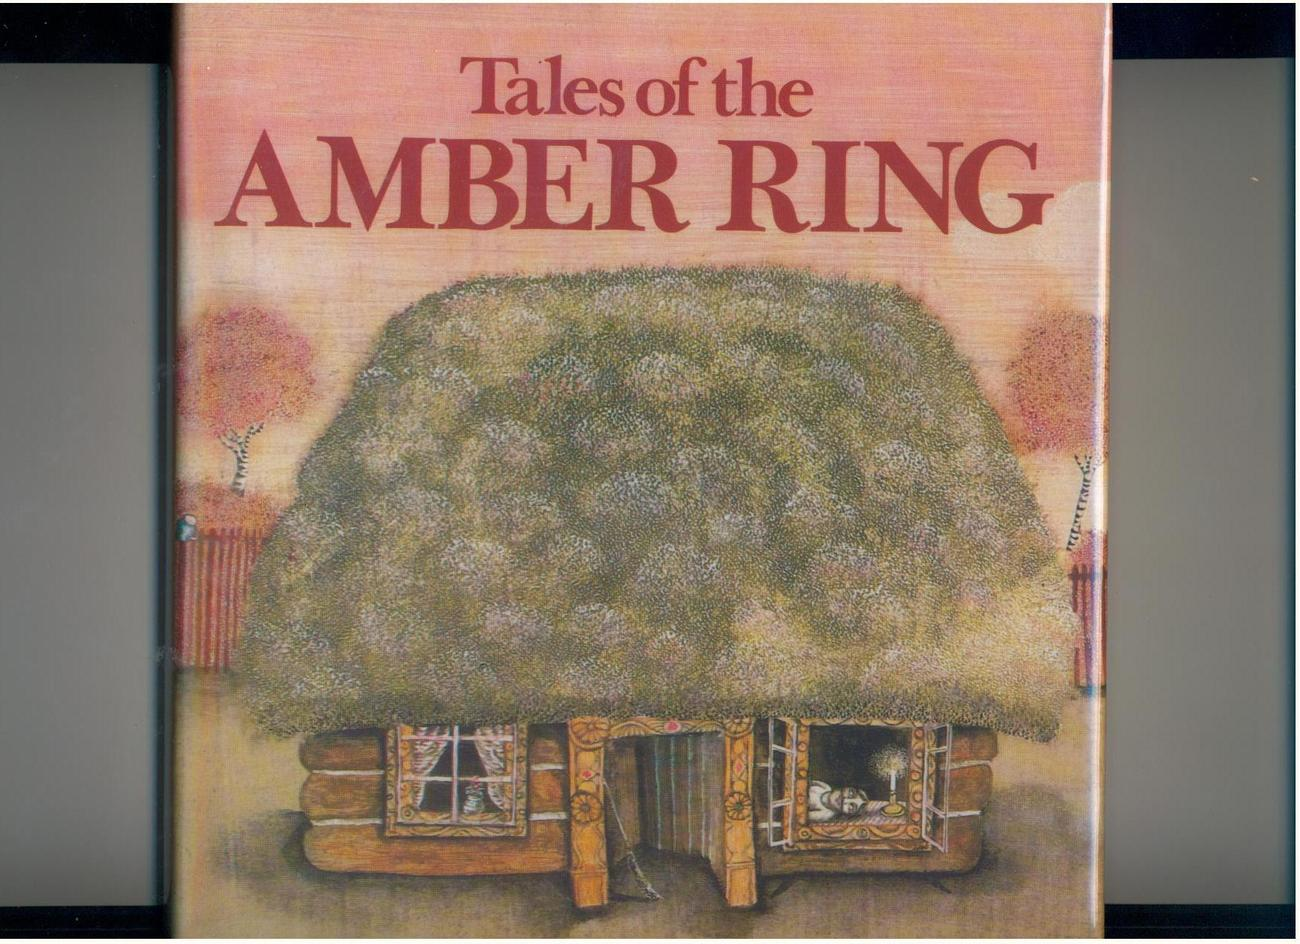 TALES OF AMBER RING - 1985 - great Petr Sis illustrations